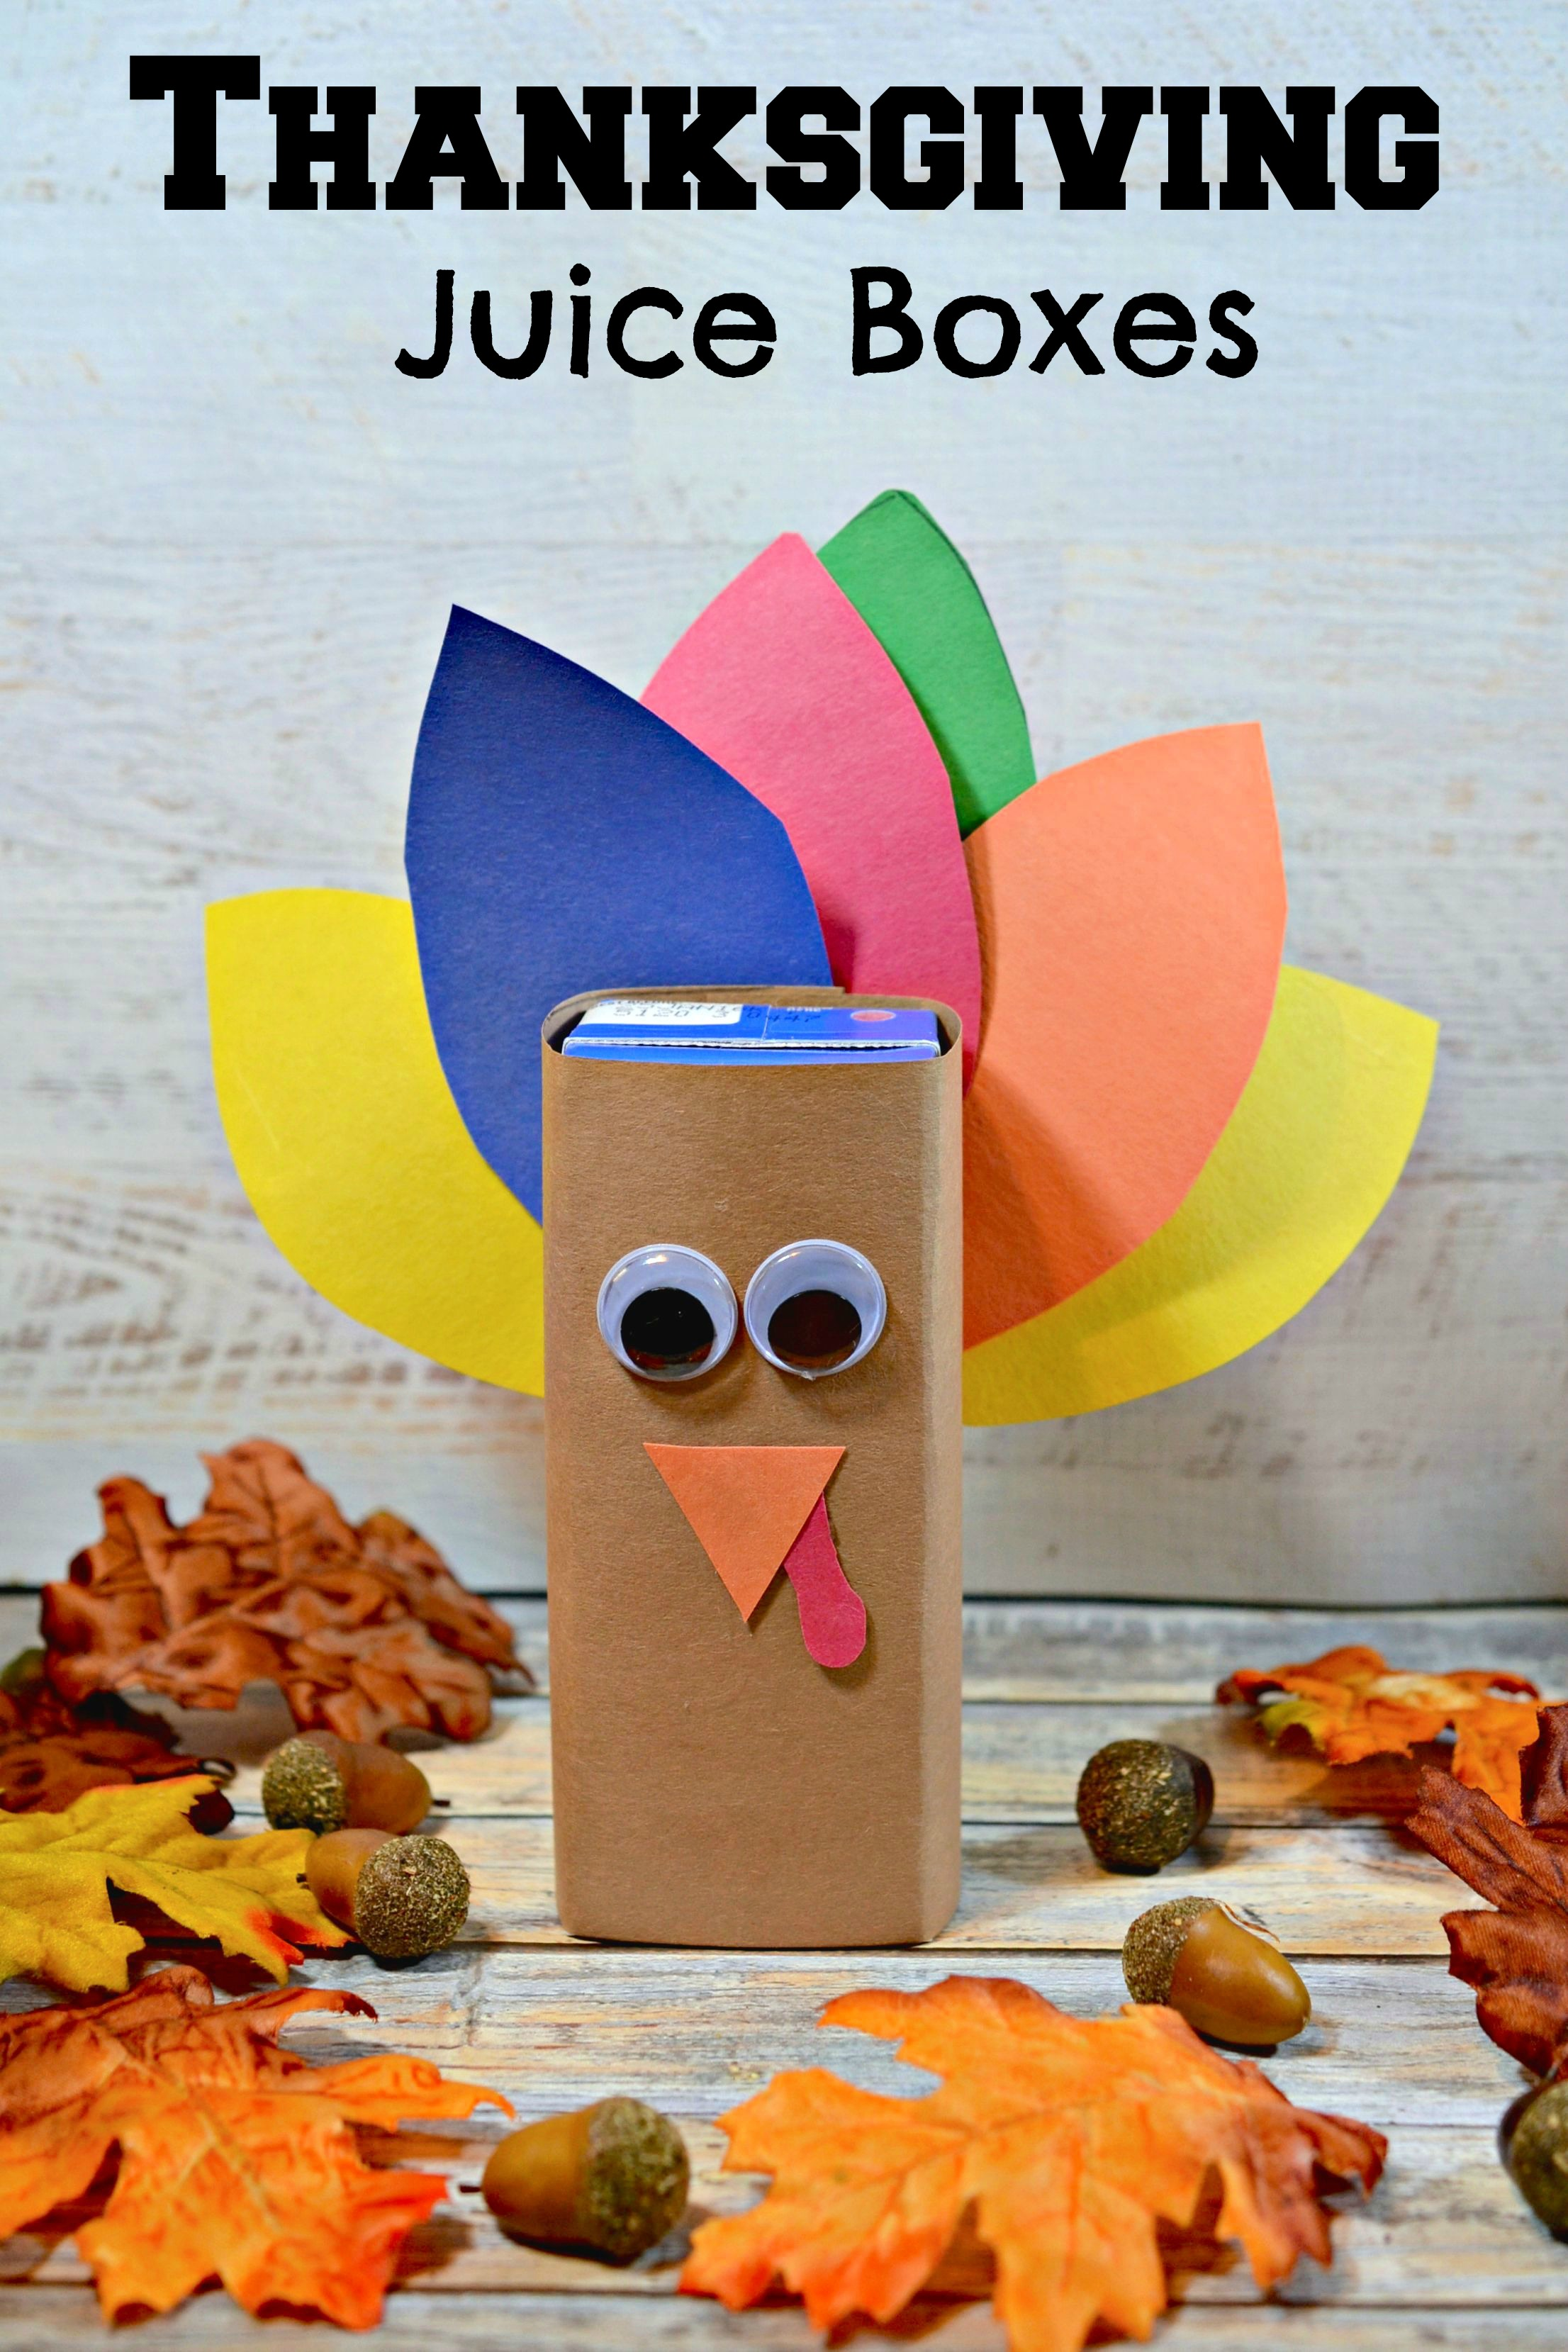 Thanksgiving Turkey Juice Box Kid's Snack Craft